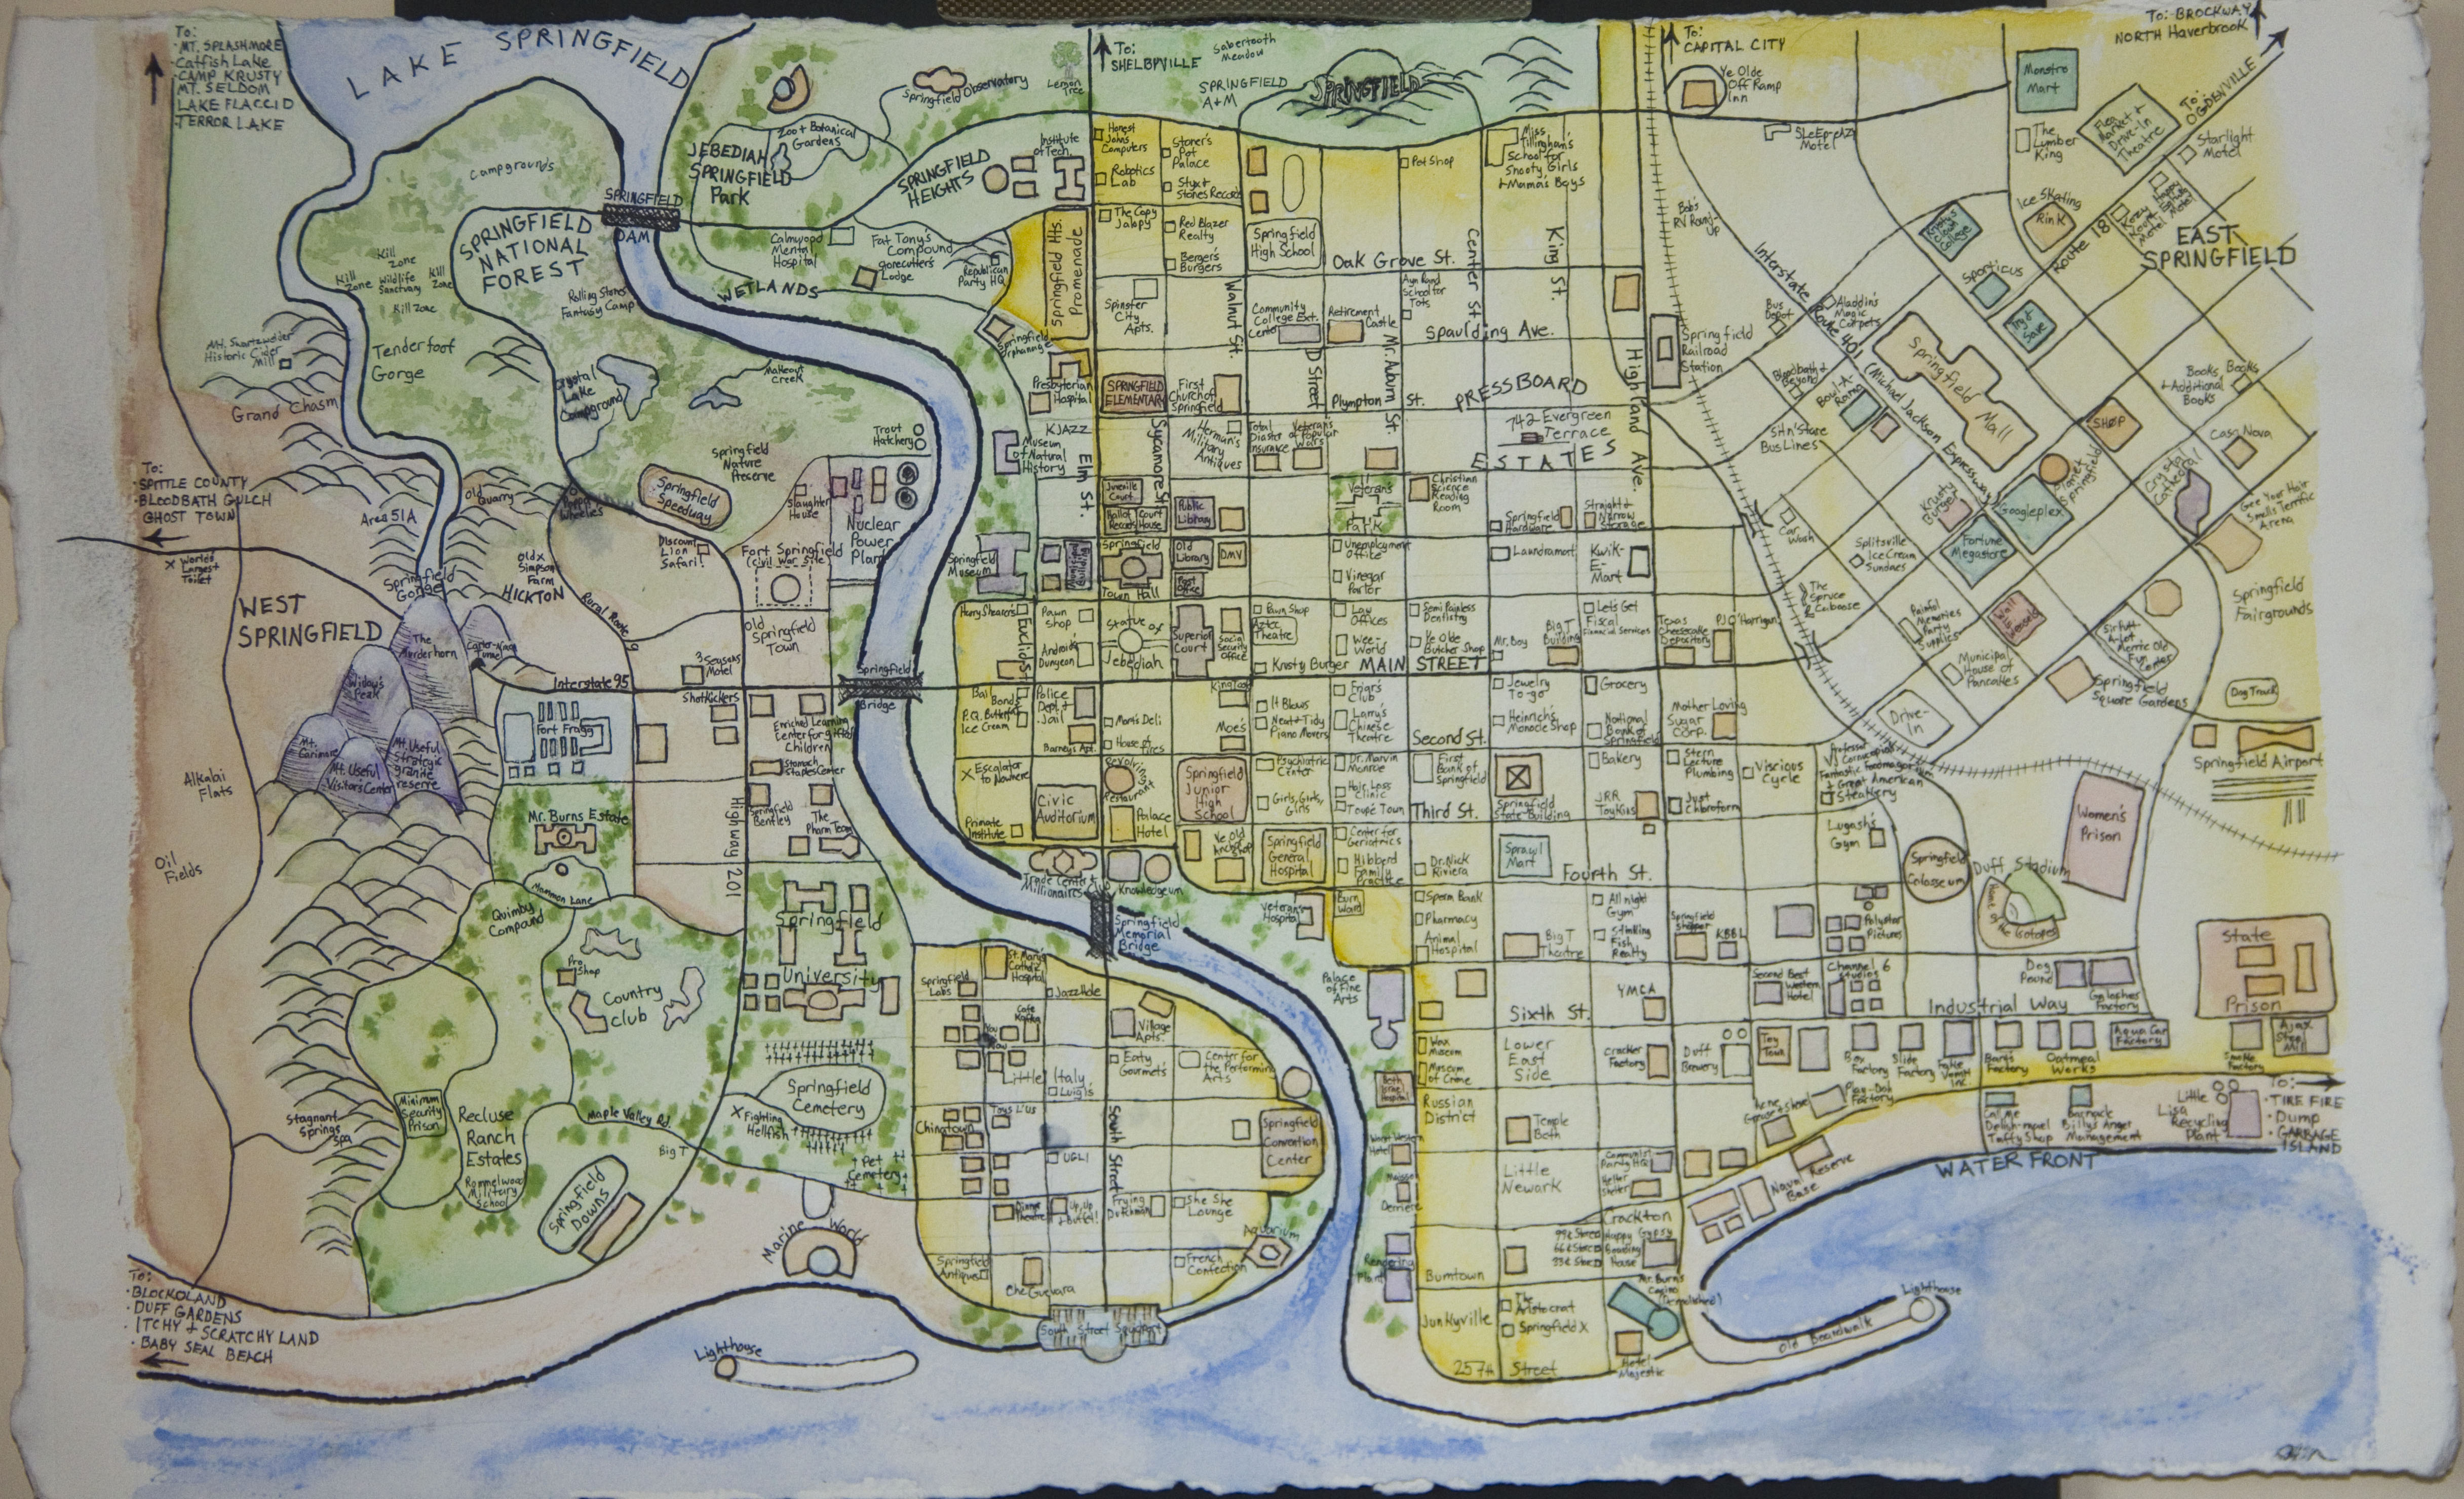 Map of Springfield USA from The Simpsons Holden Wilson